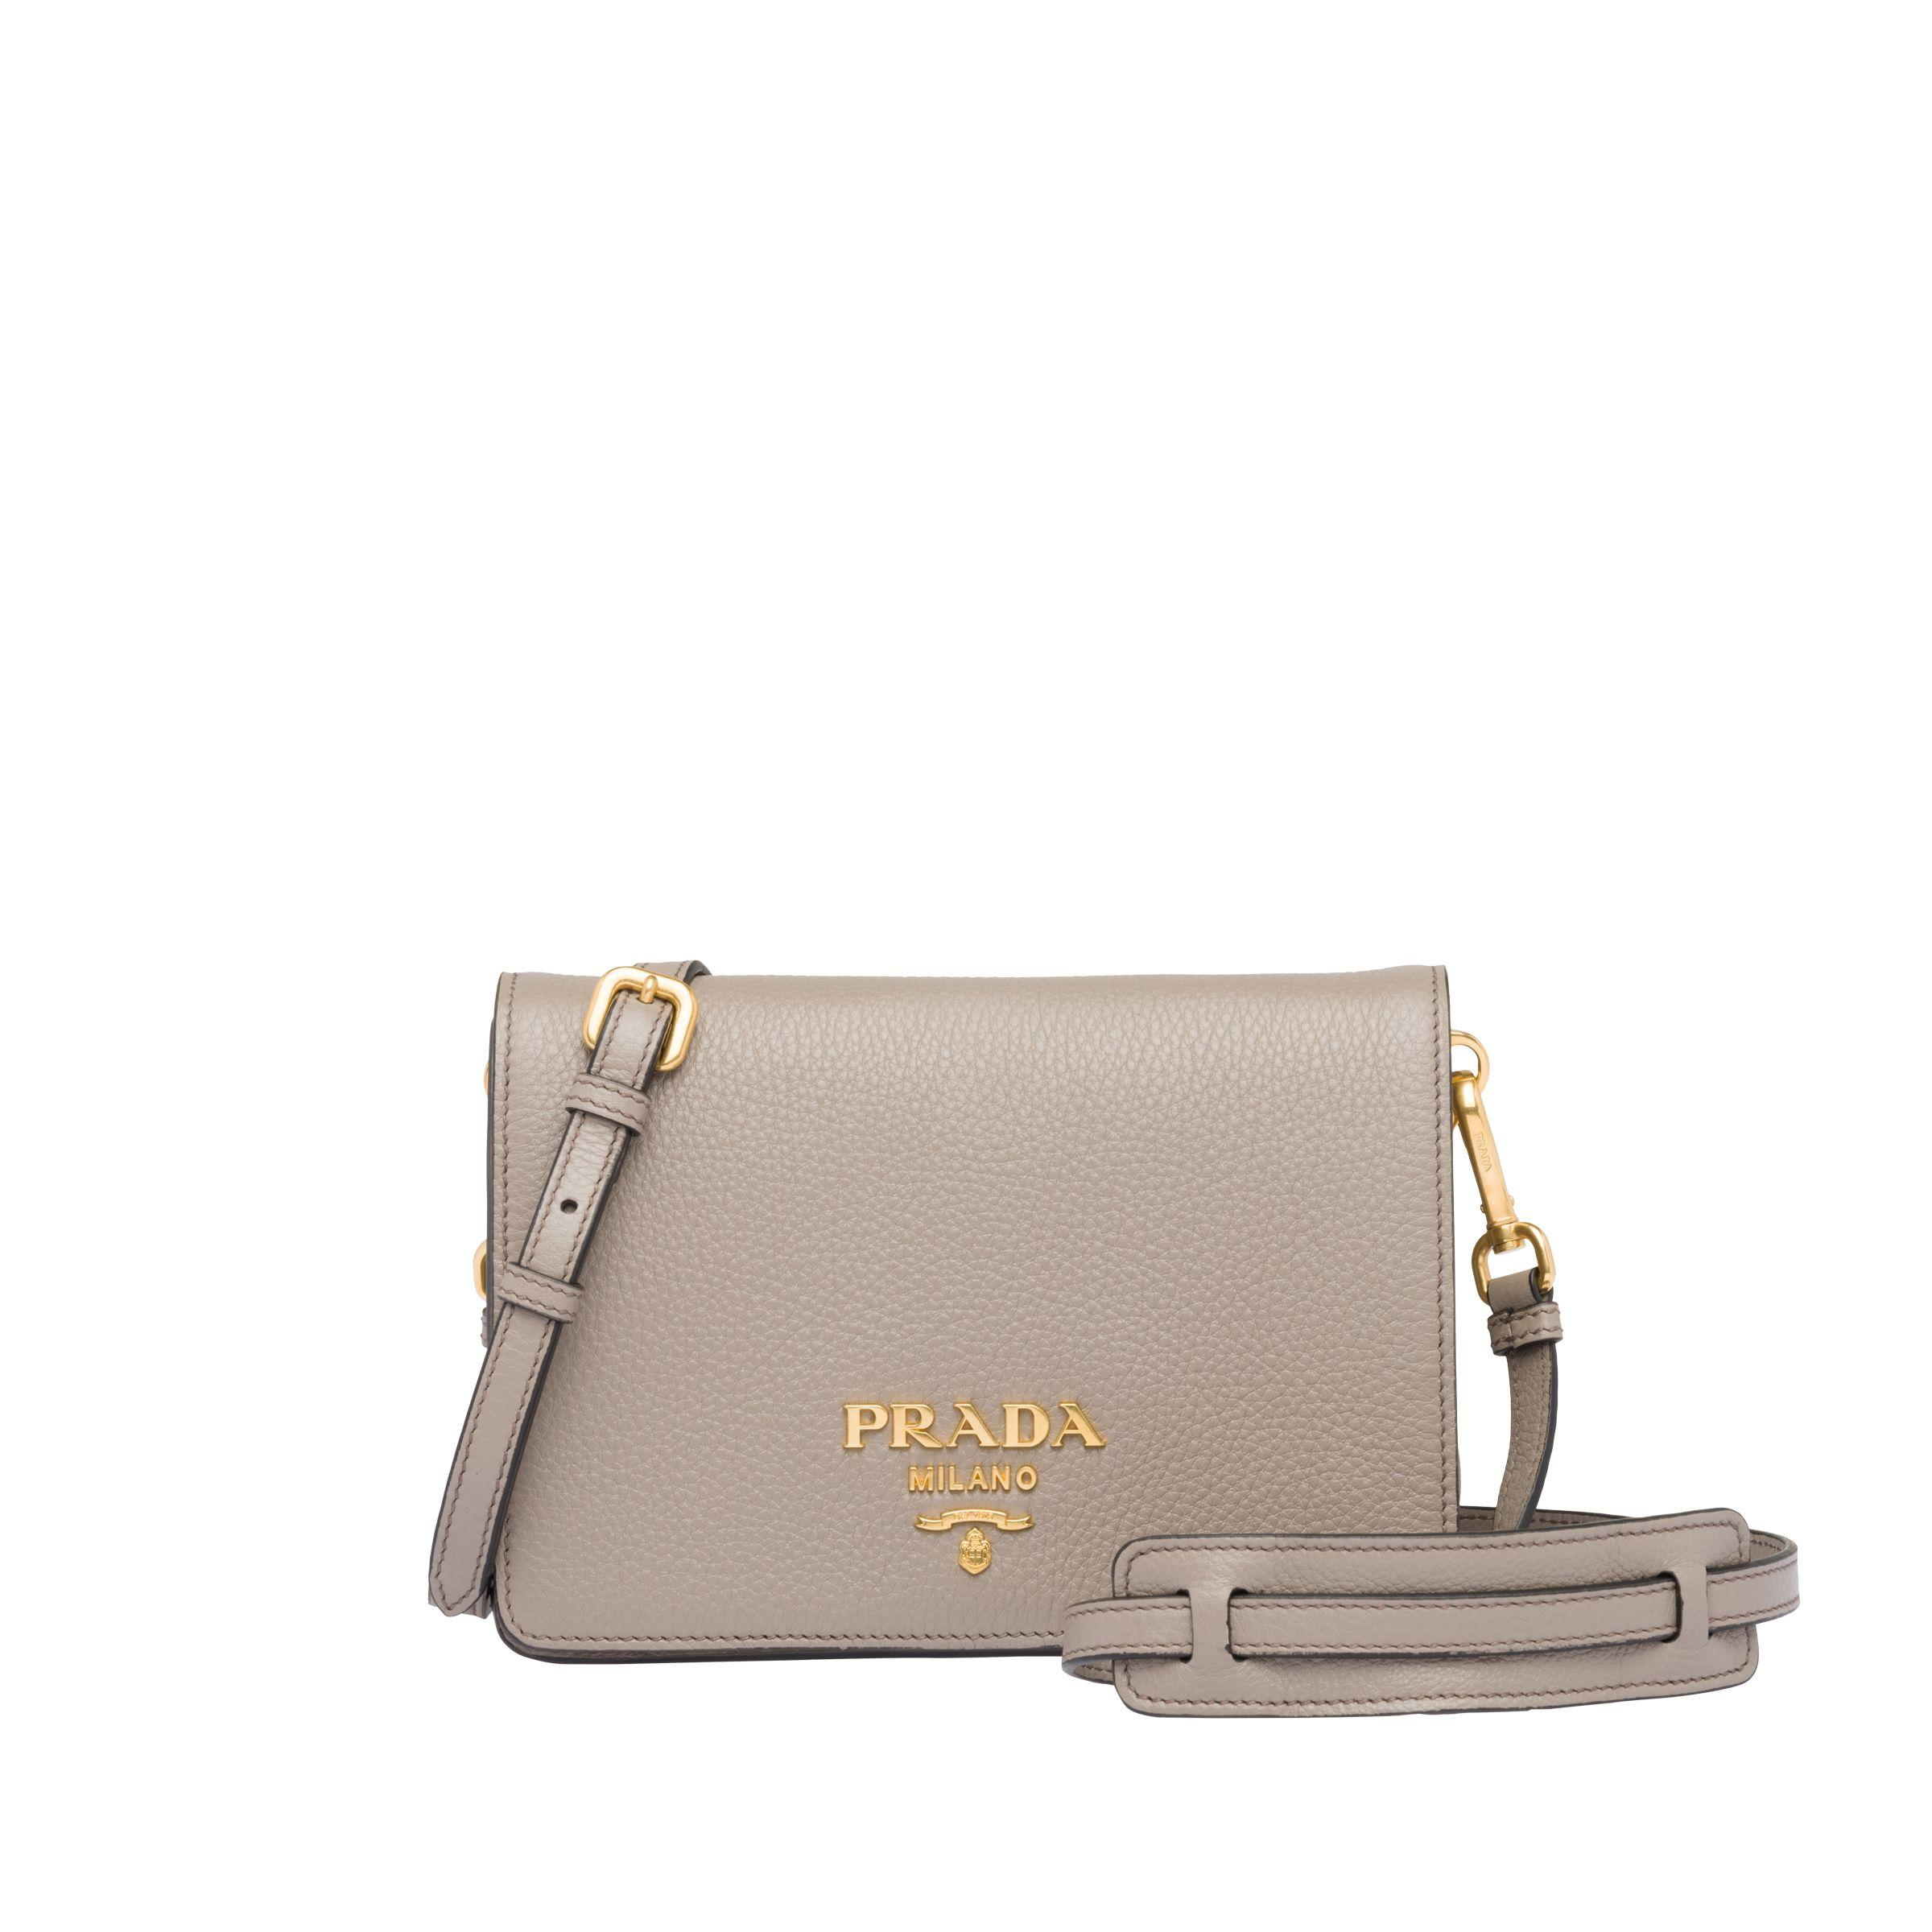 a6e60eab26673c Prada. Women's Calf Leather Shoulder Bag. $1,690 From Orchard Mile